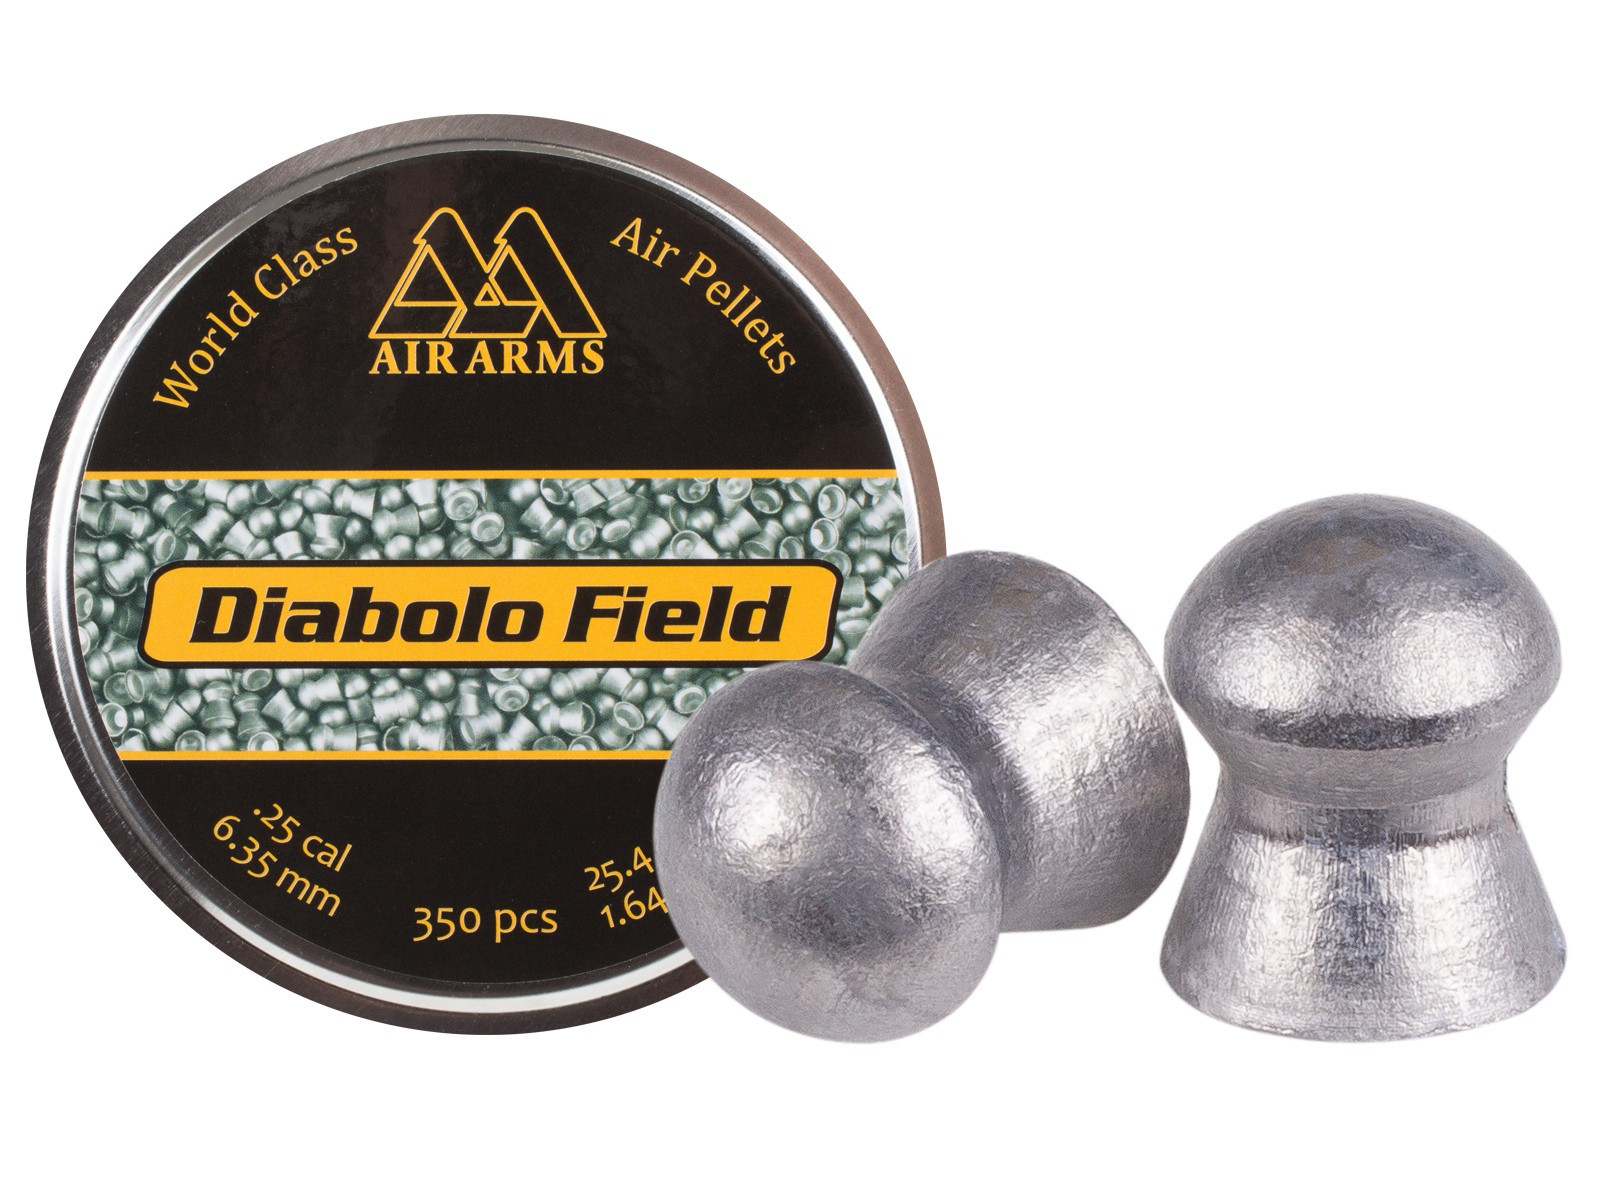 Air Arms Diabolo Field .25 Cal, 25.4 gr - 350ct